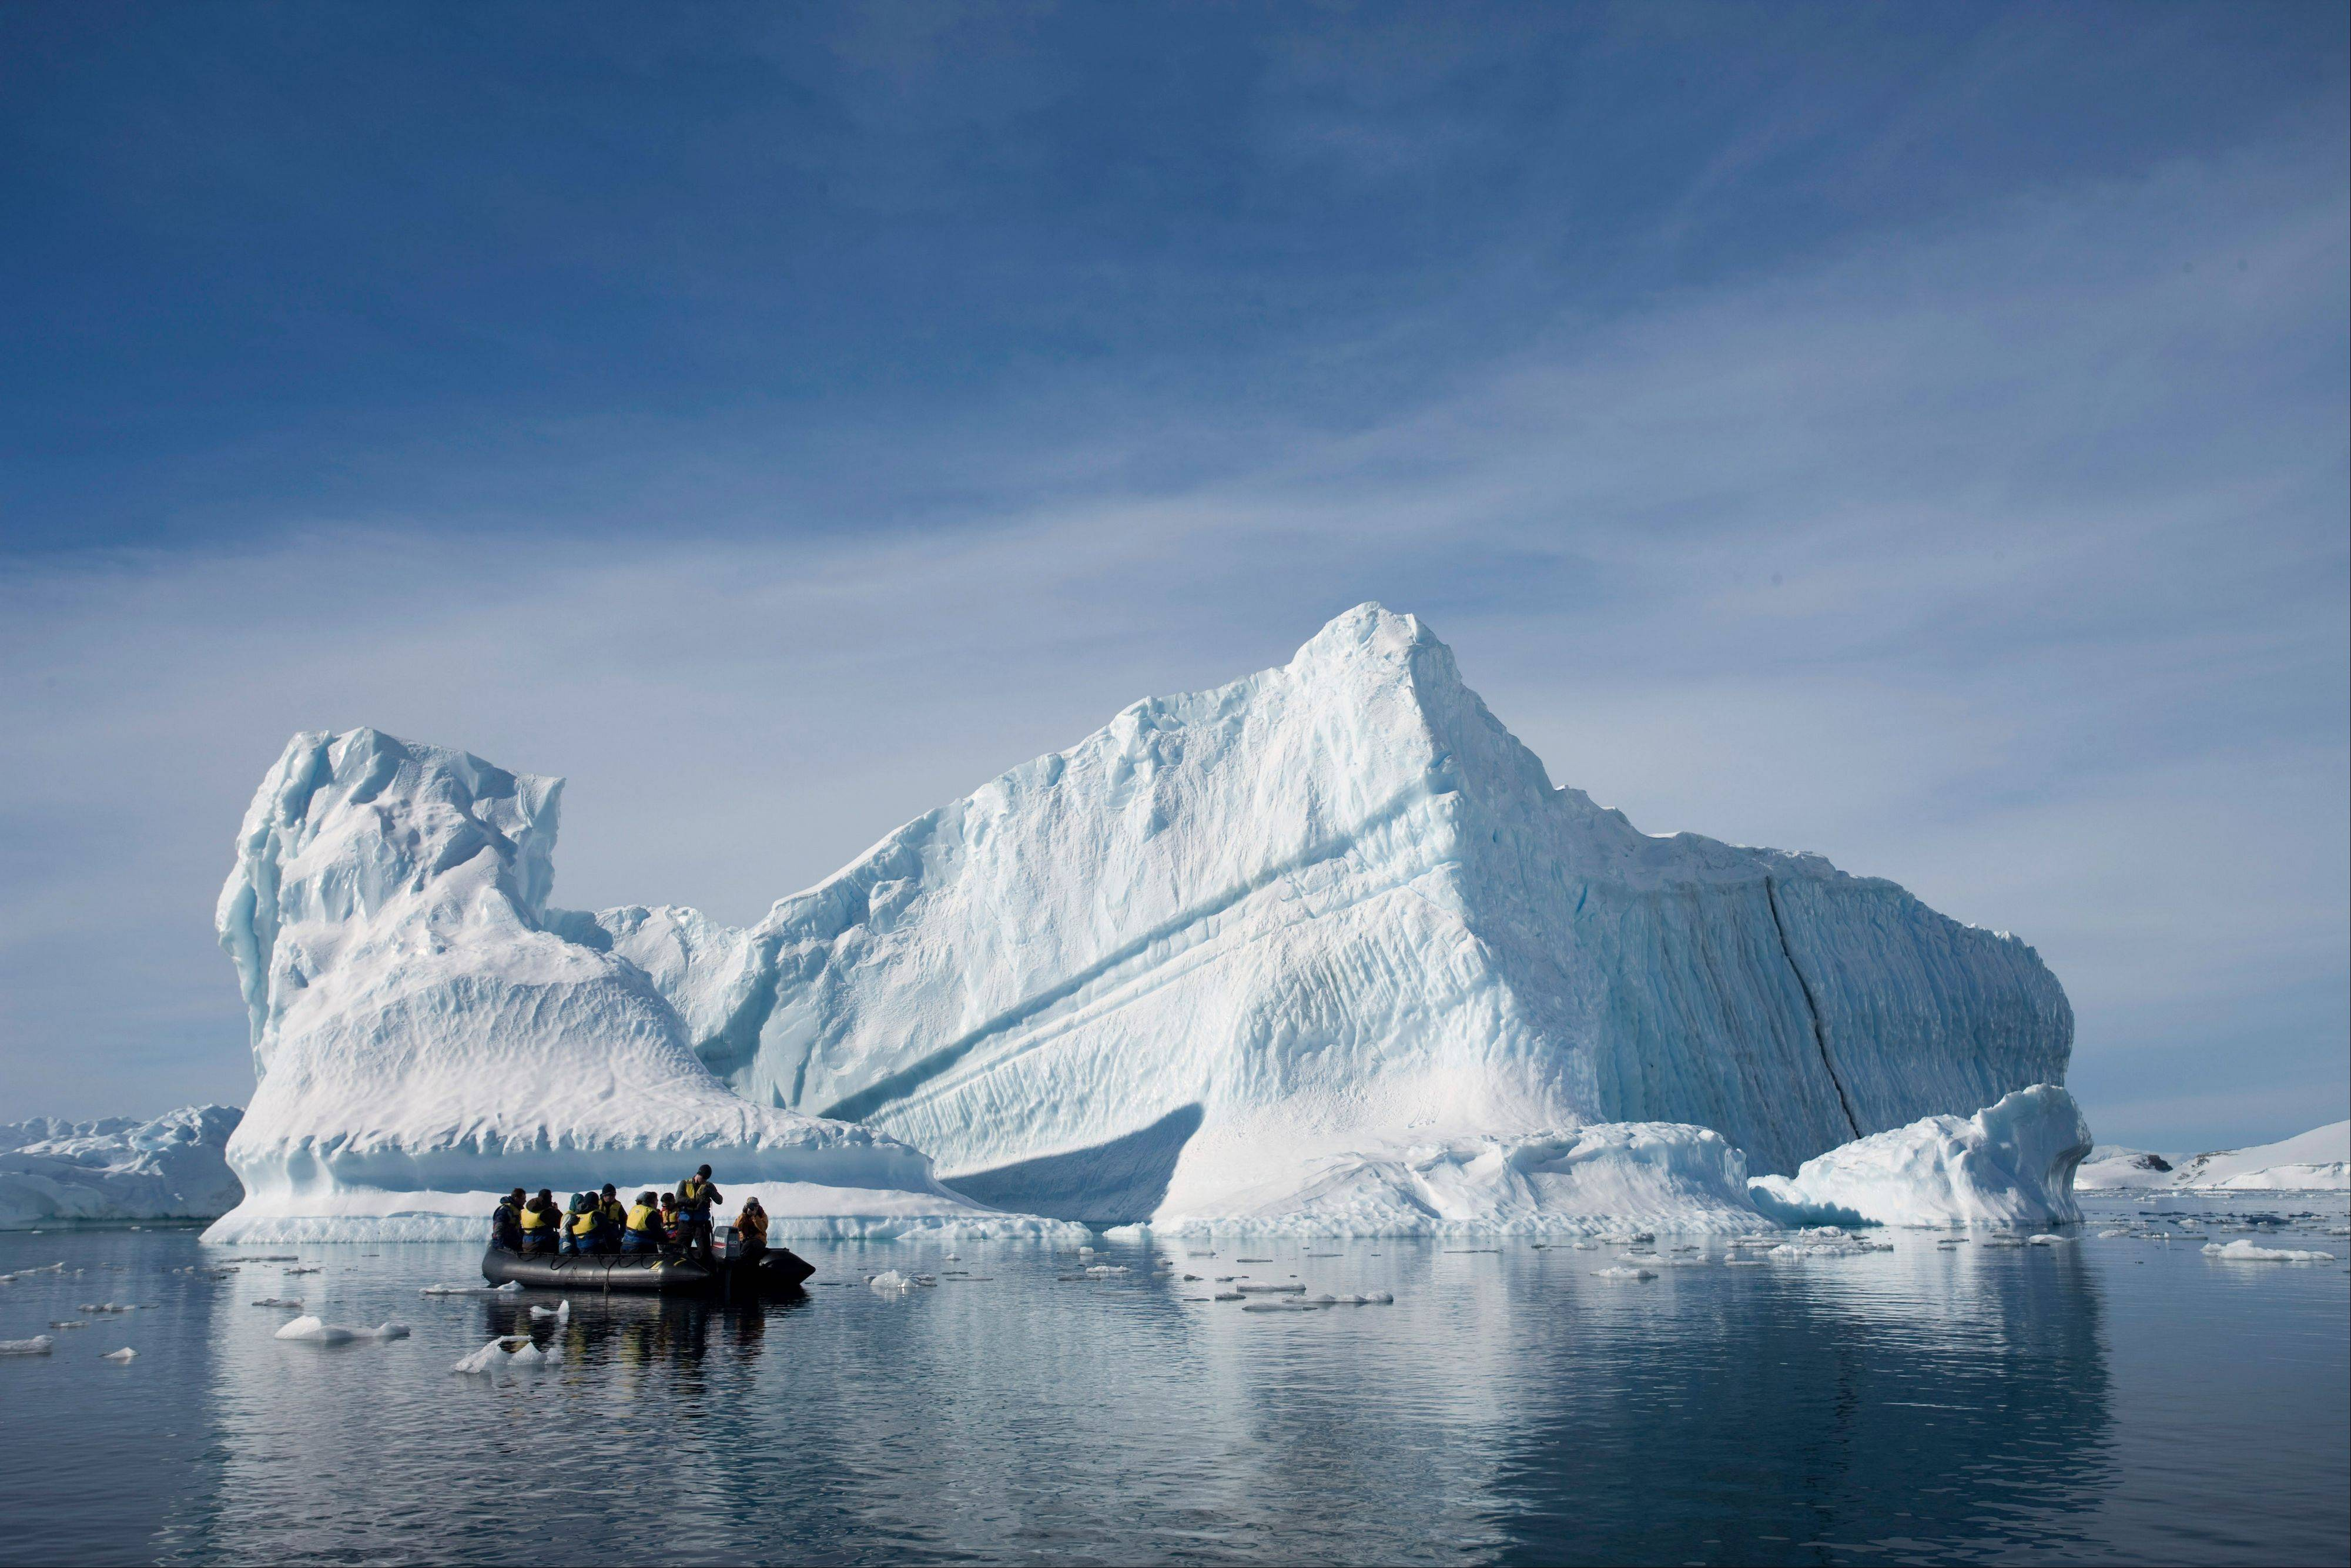 Tourists get an up close view of an iceberg along the Antarctic Peninsula.